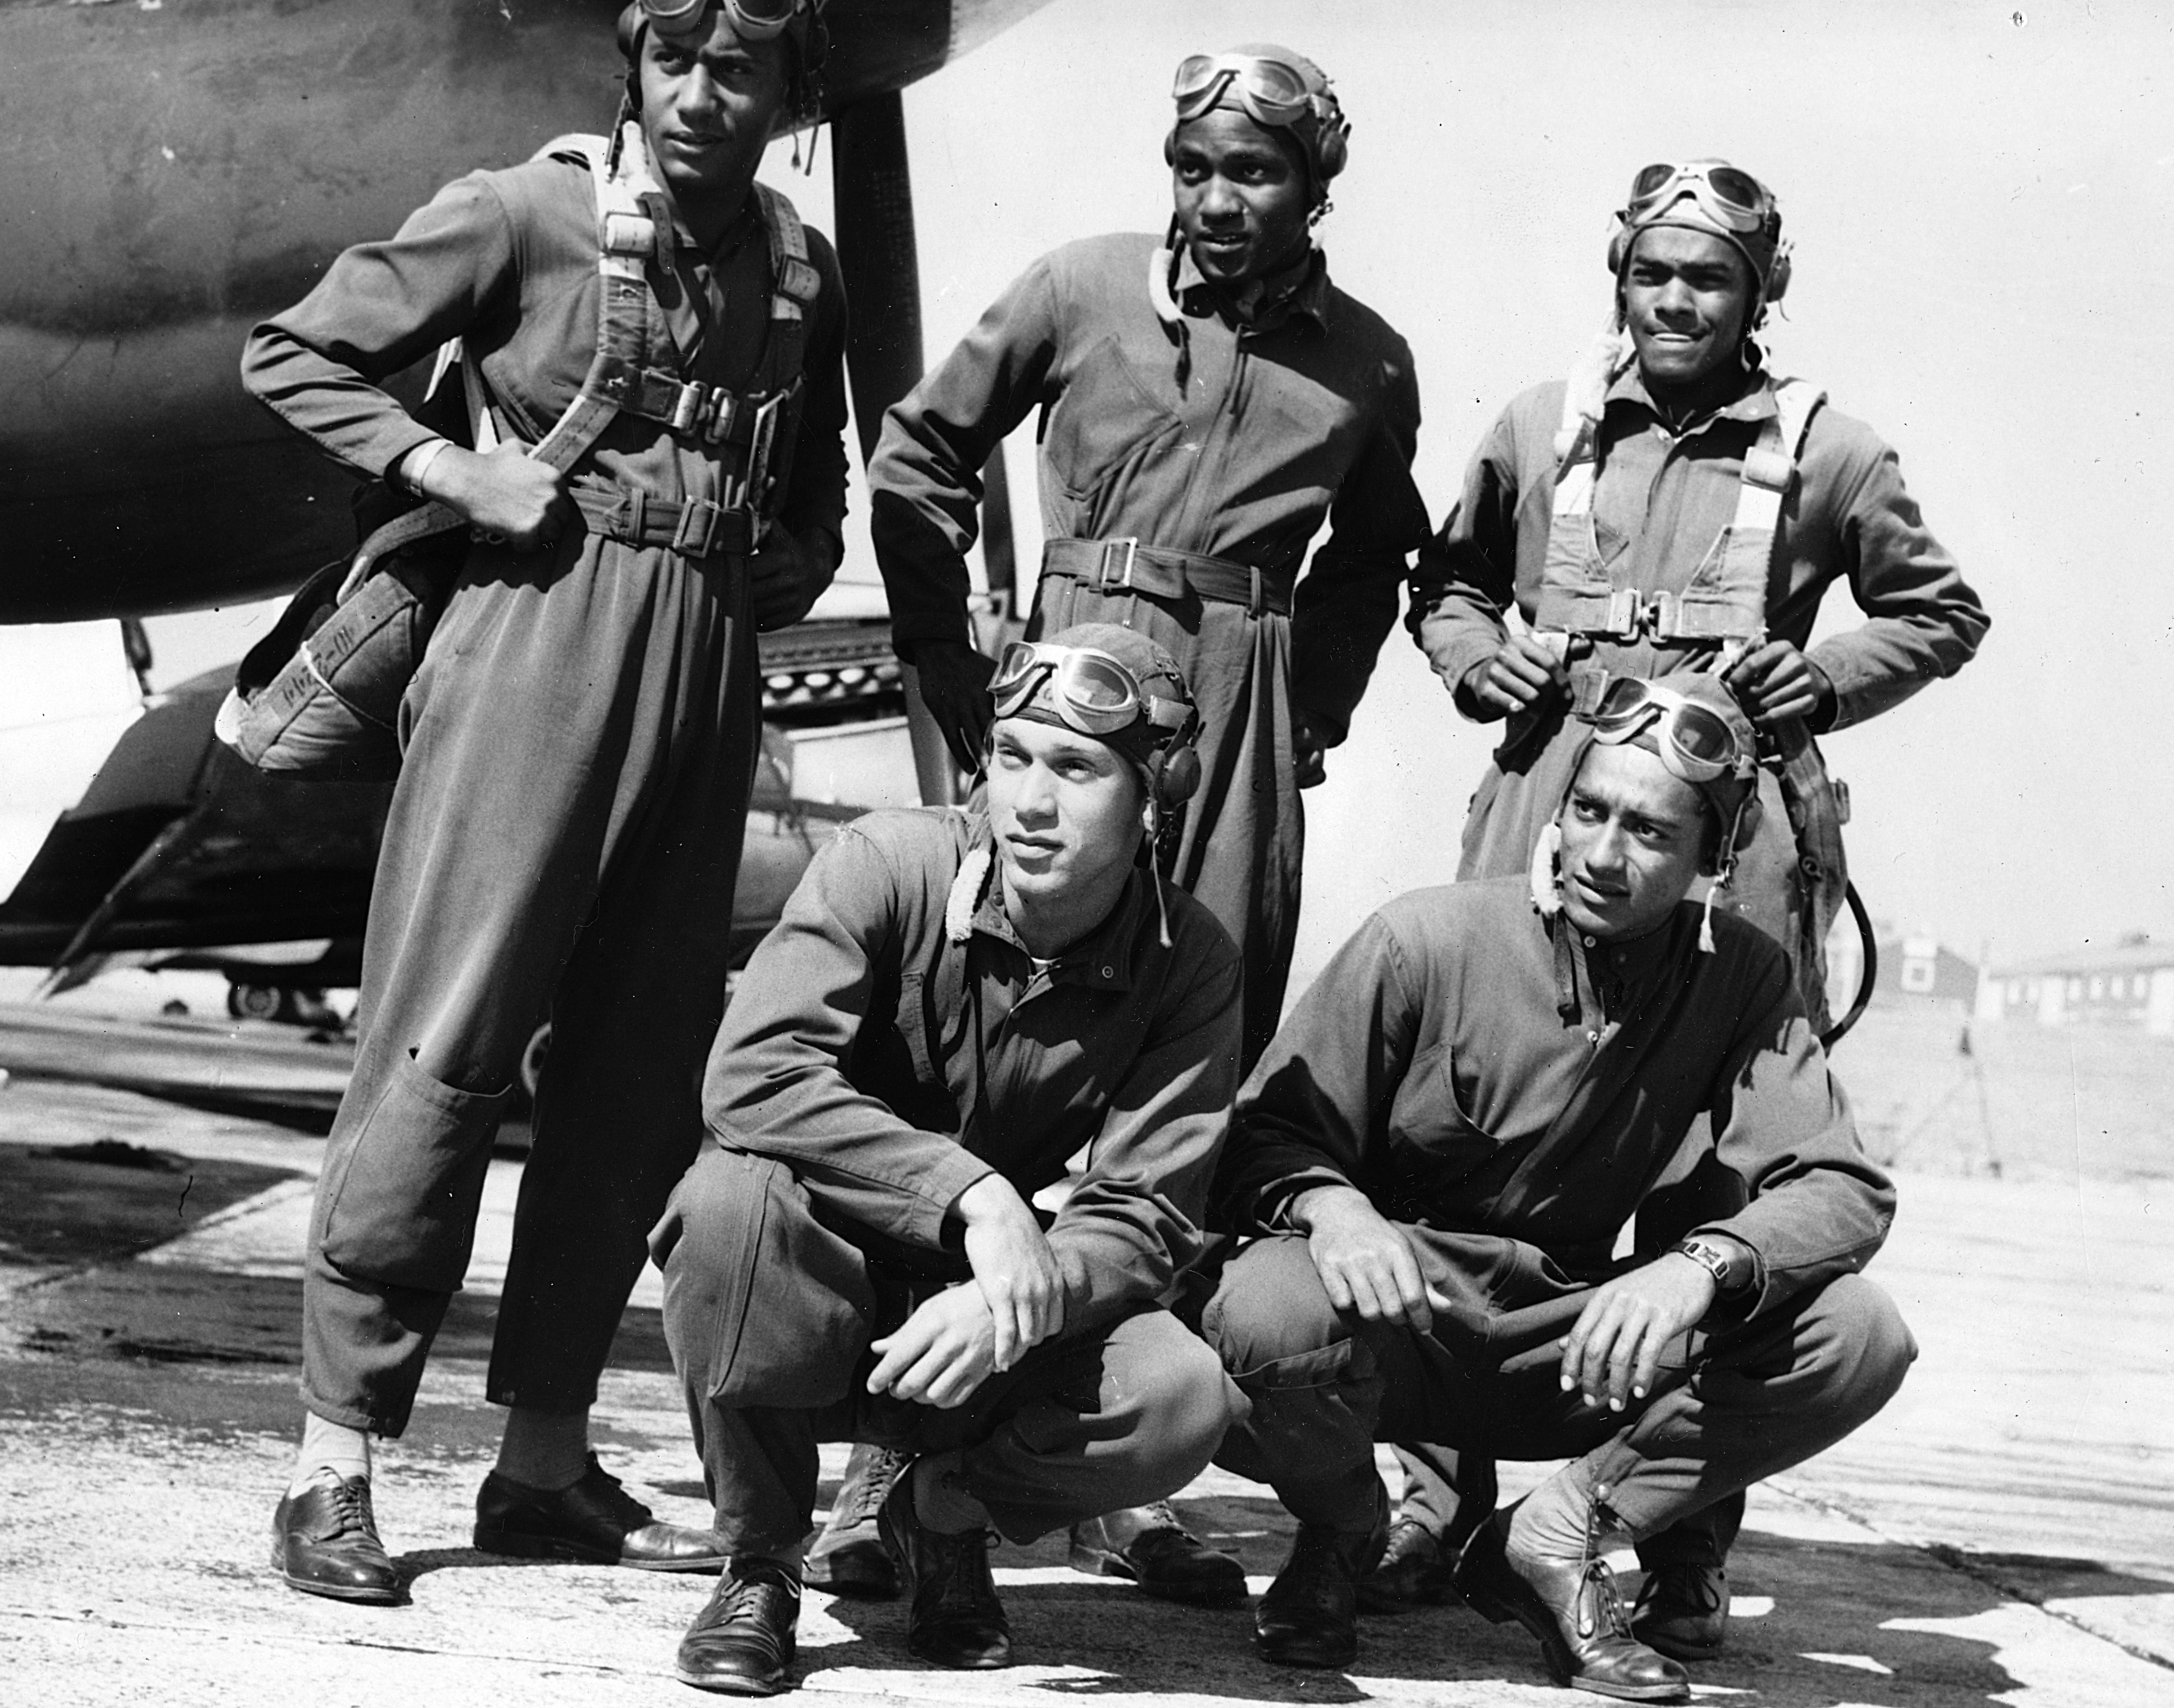 FIve-member aircrew posing before aircraft (© Afro American Newspapers/Gado/Getty Images)